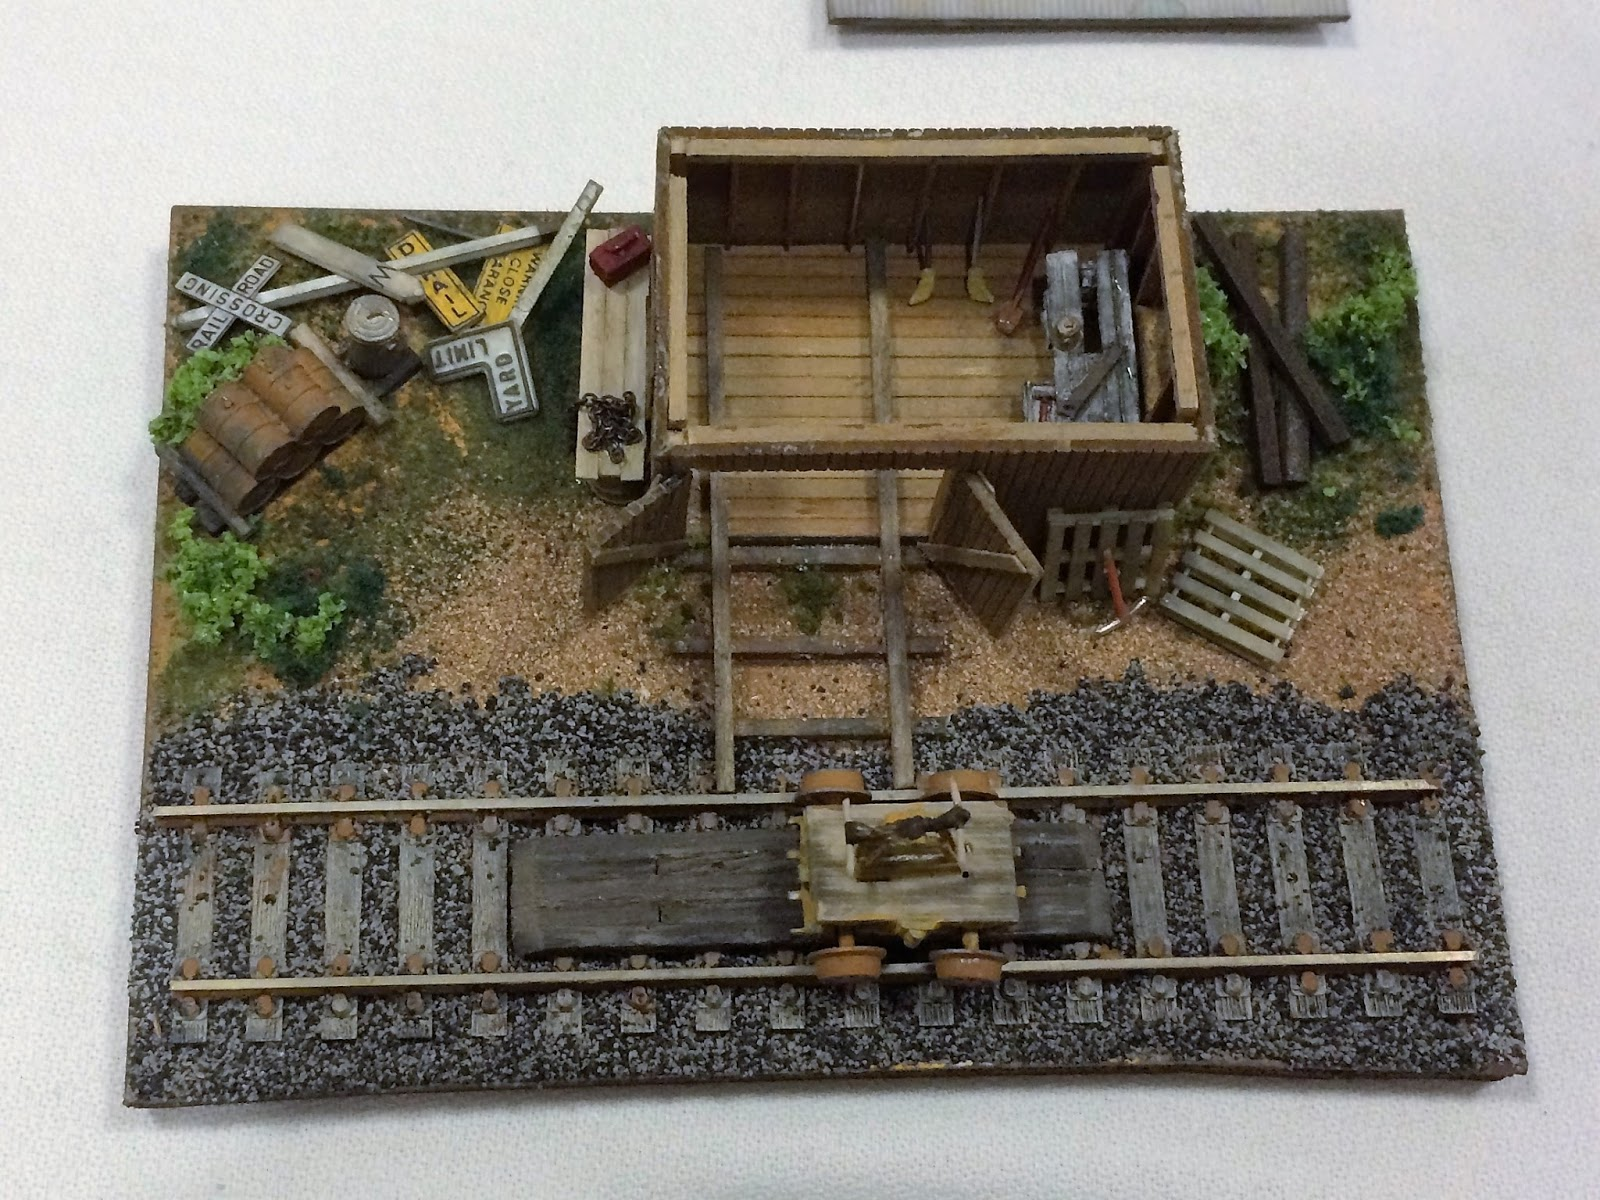 Nirvana Valley Model Railroad Amherst 2016 Models From